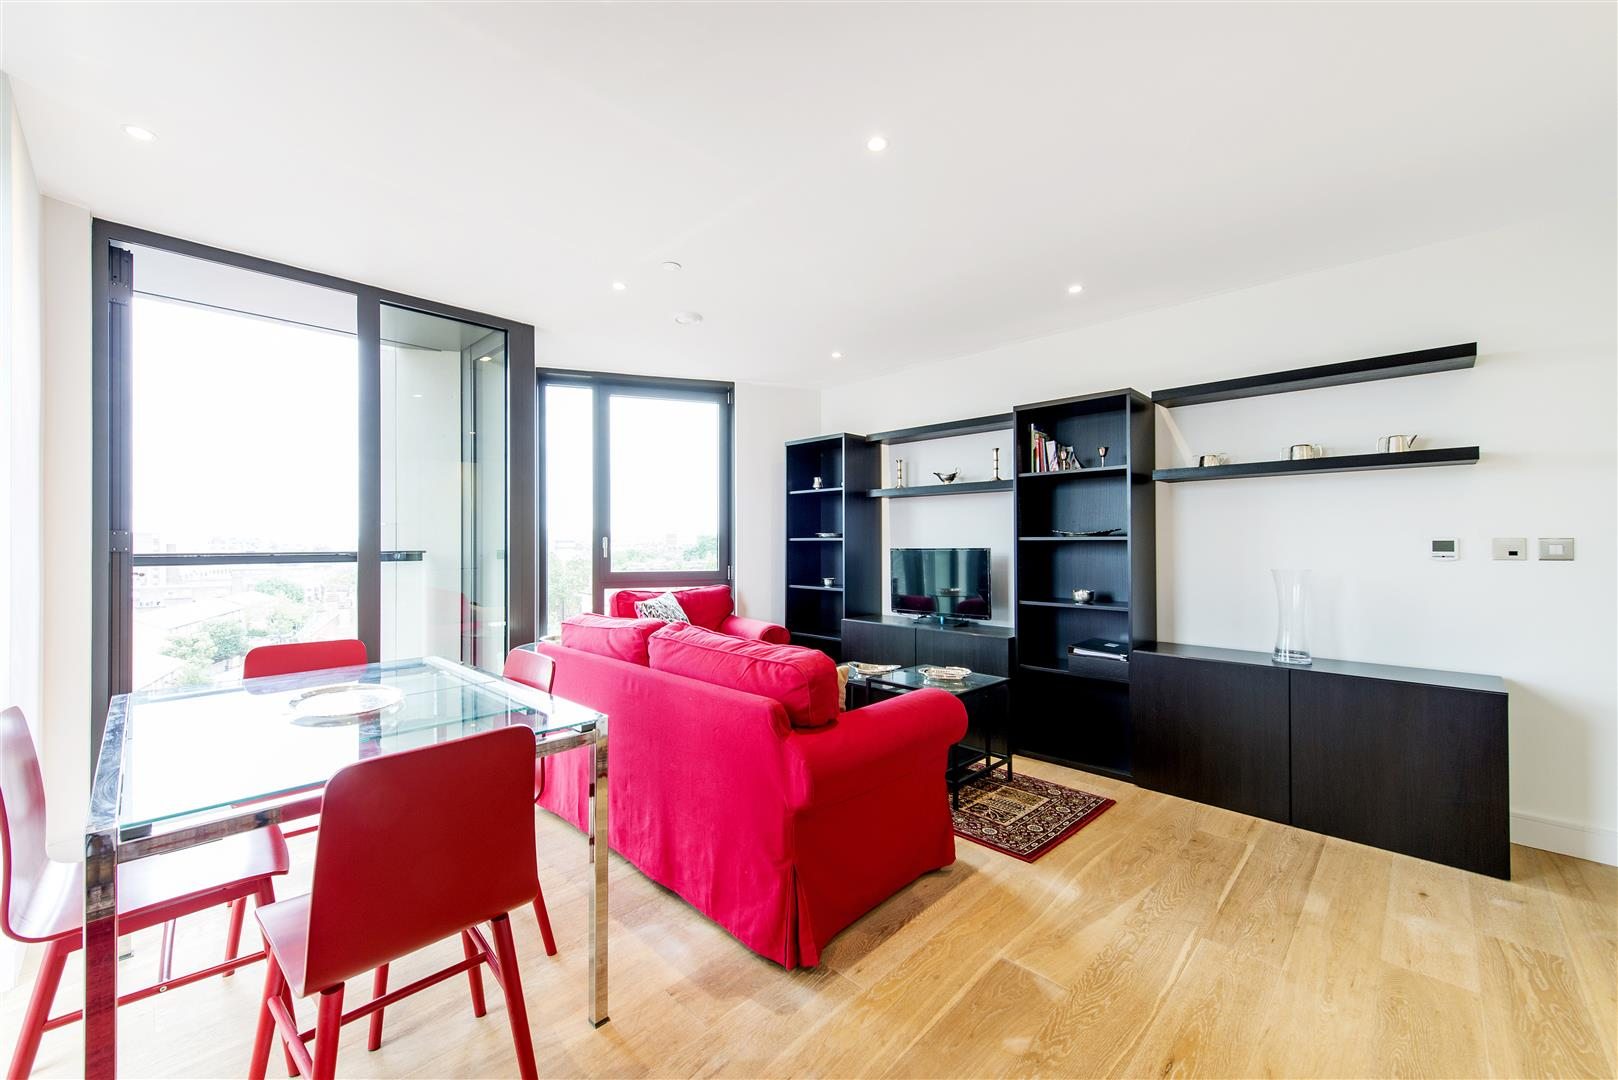 2 Bedrooms Flat for sale in Parliament House, 81 Black Prince Road, Nine Elms, London SE1